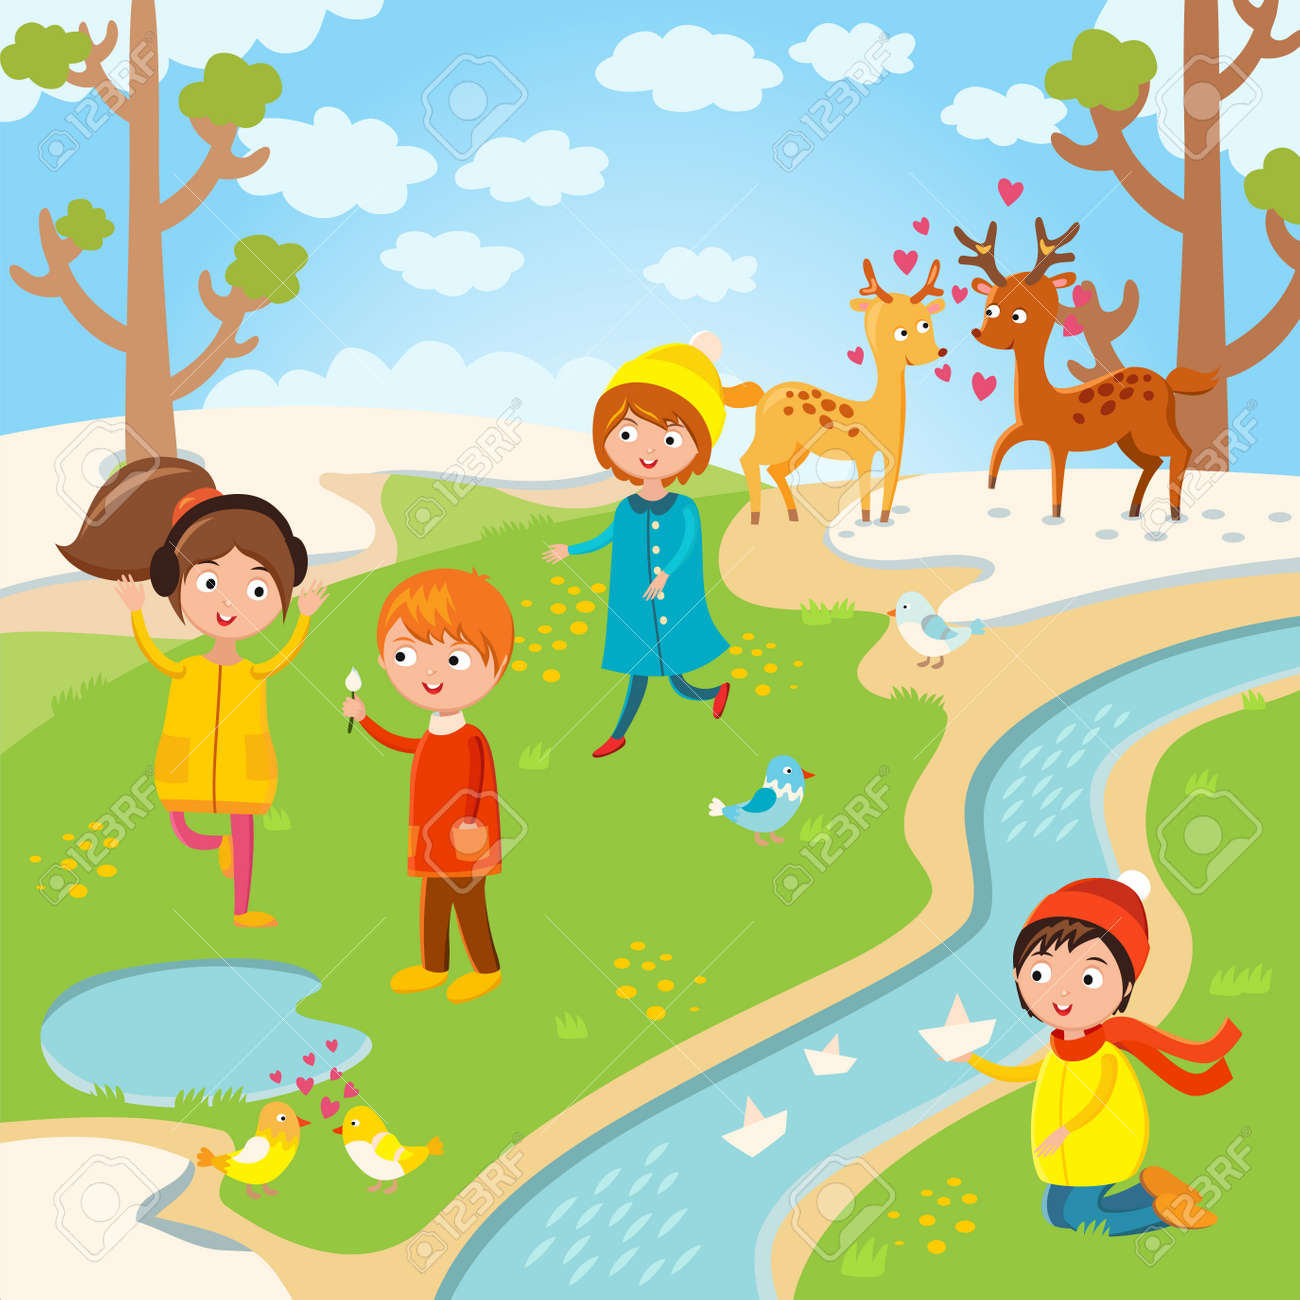 spring or summer kids playing outdoor nature holidays children kids play vector - Spring Images For Kids